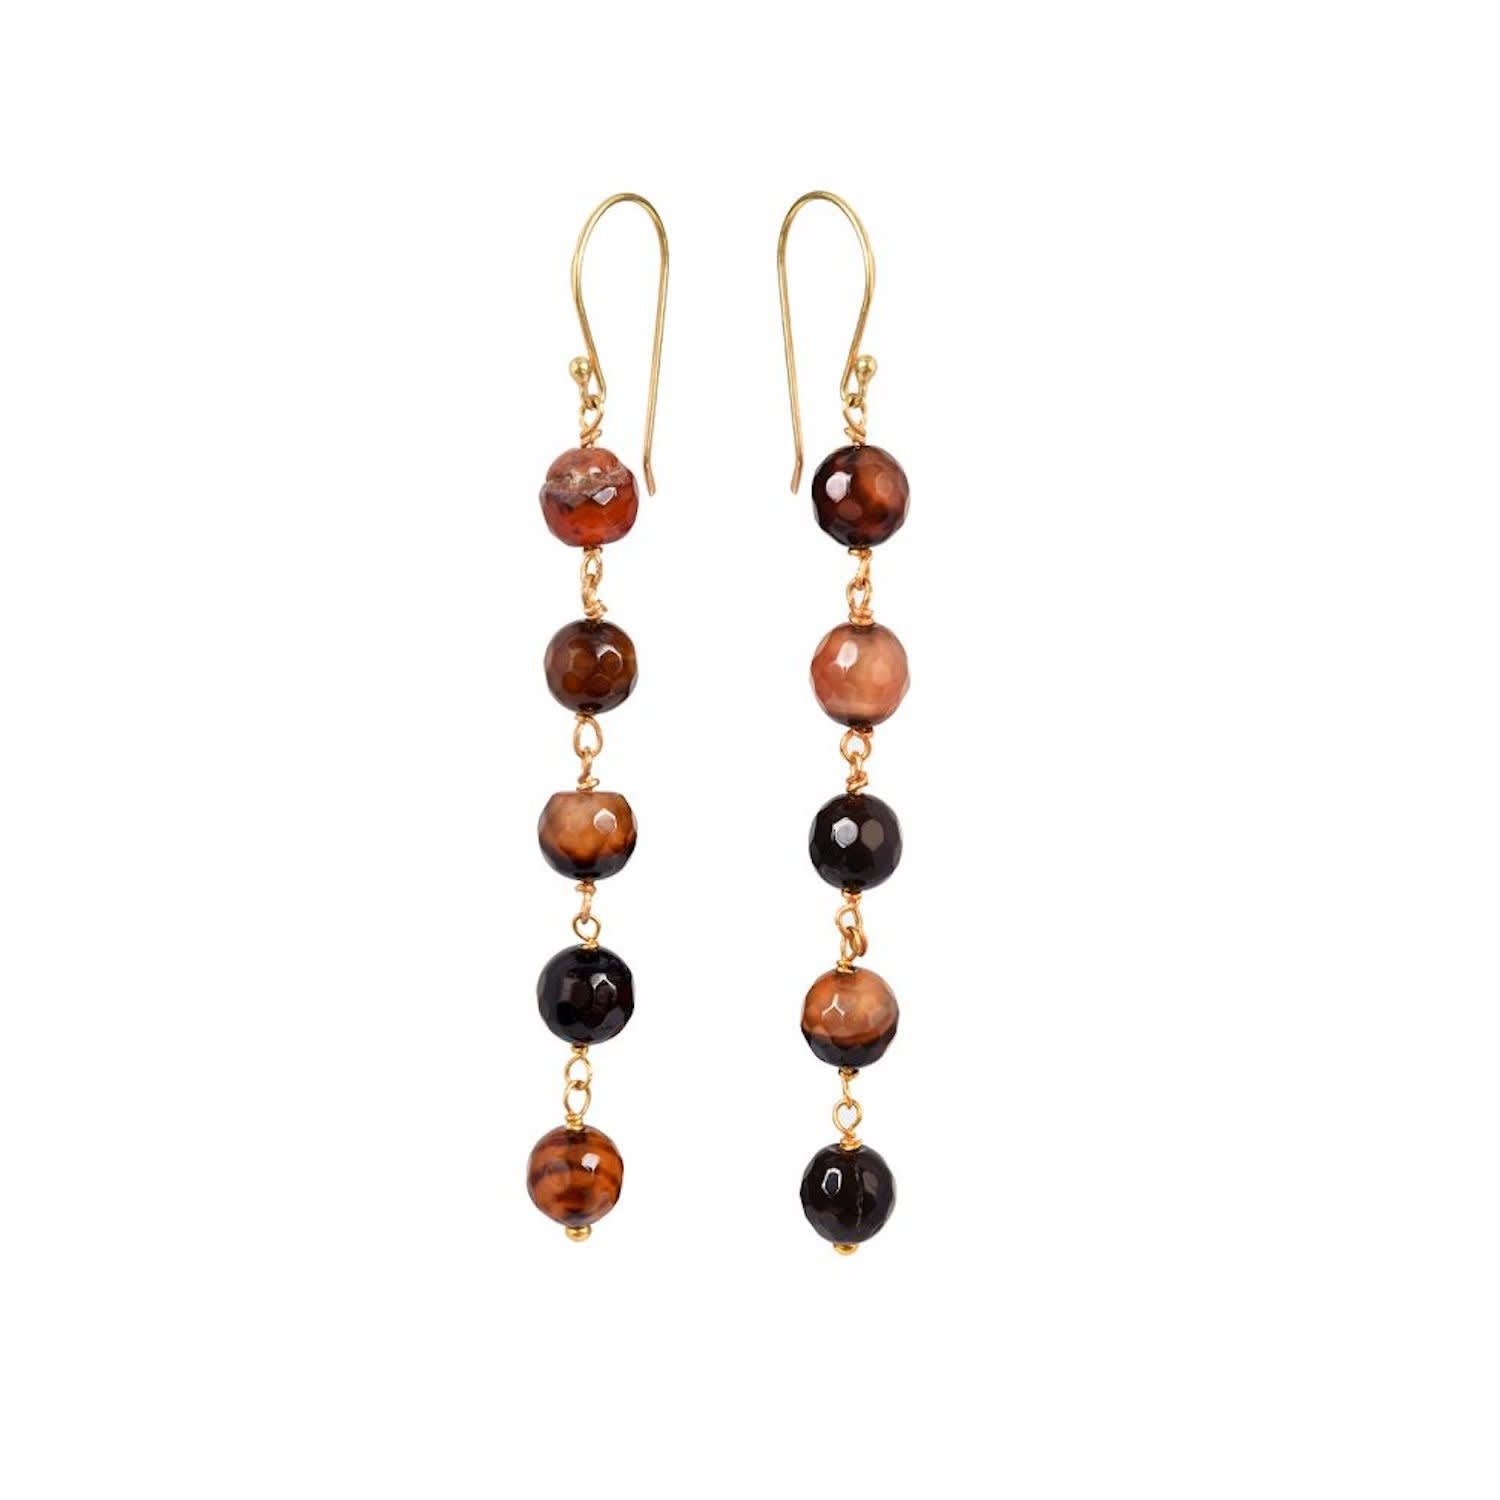 Bella Five Stone Earrings Brown Agate by Mirabelle Jewellery